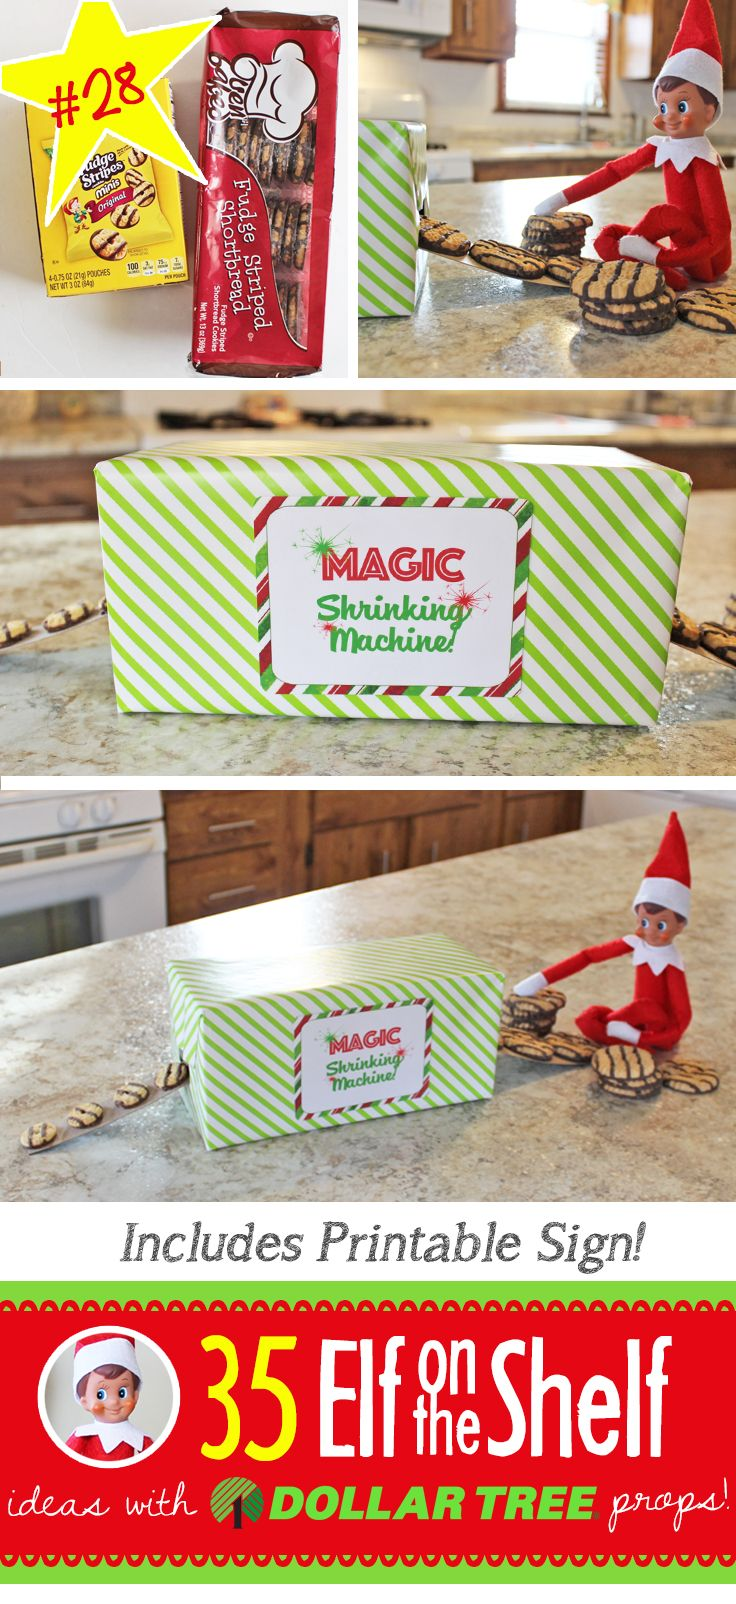 55+ New Elf on the Shelf Ideas: #28 Magic Shrinking Machine